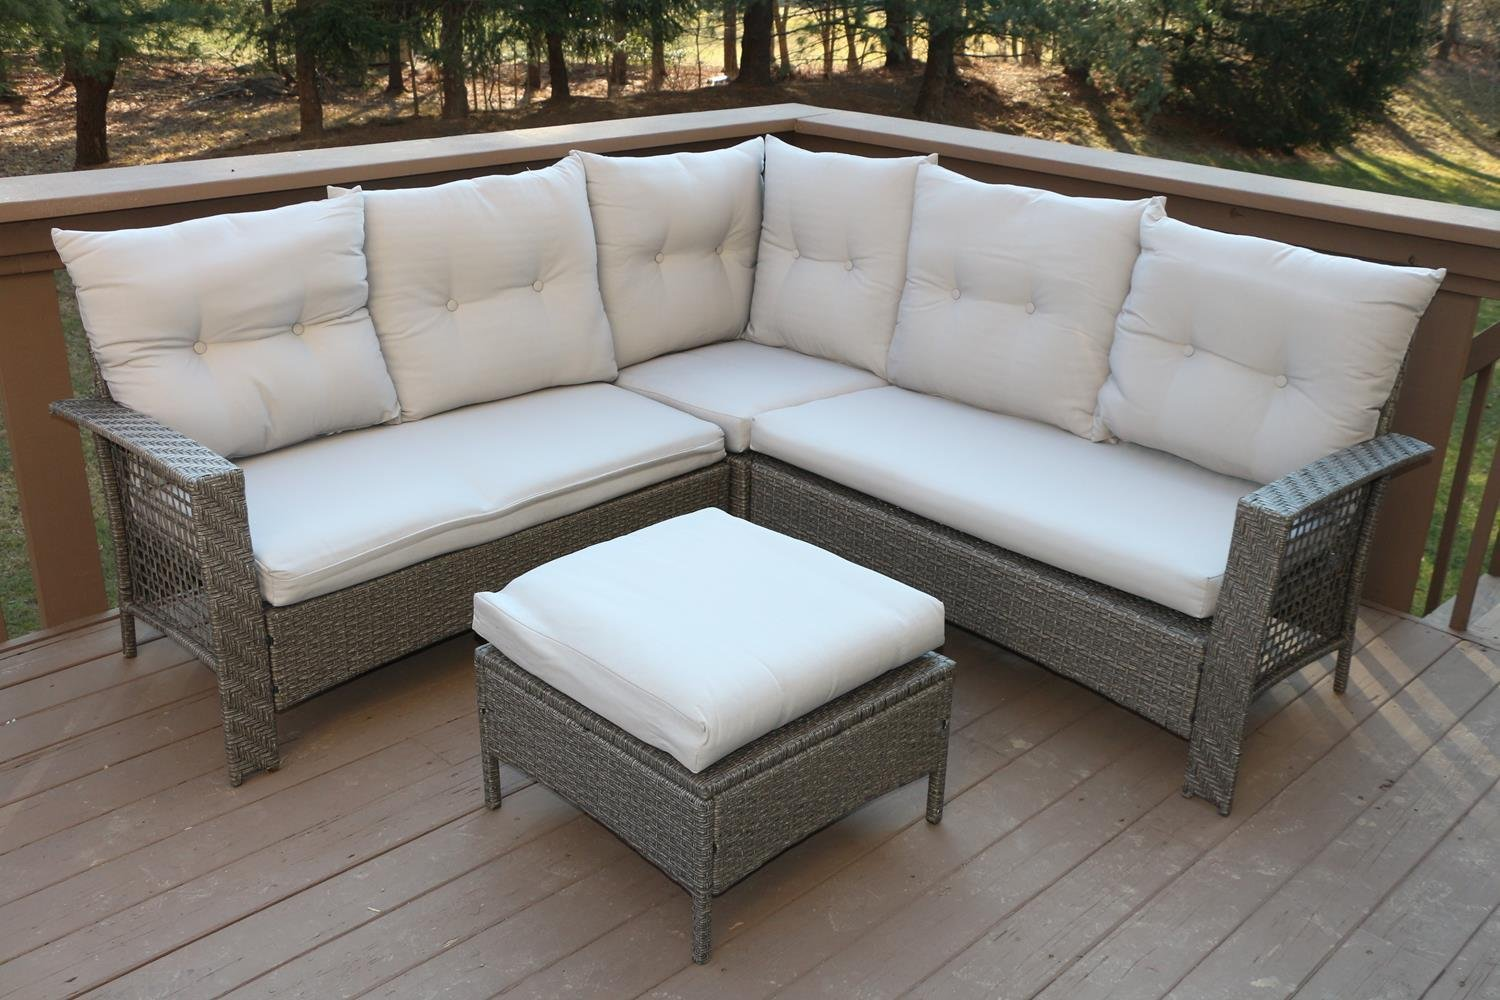 Amazon.com: Oliver Smith   Large 4 Pc High Back Rattan Wiker Sectional Sofa  Set Outdoor Patio Furniture   Aluminum Frame With Ottoman   9514 Beige:  Kitchen ...